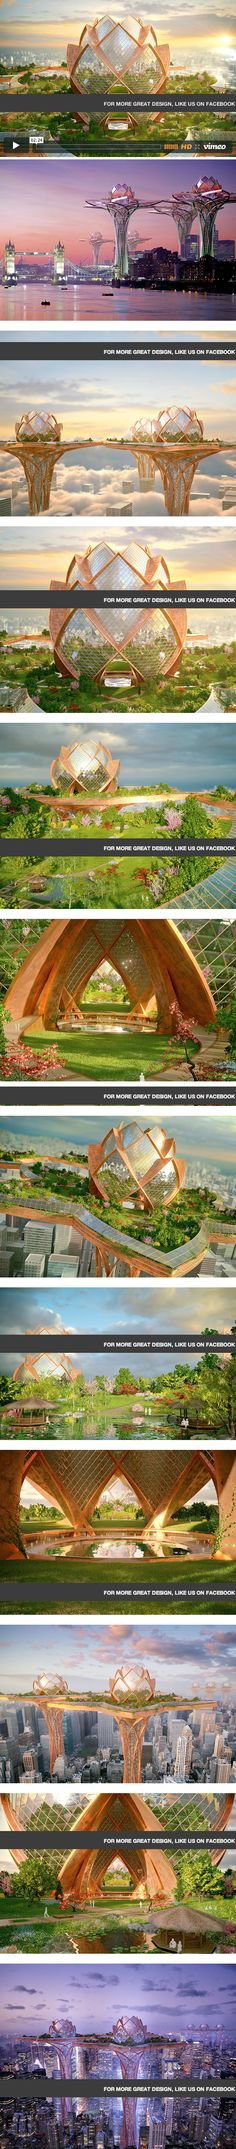 This is beyond amazing! Futuristic City in the Sky Provides Tranquil Oasis Away From Urban Life.